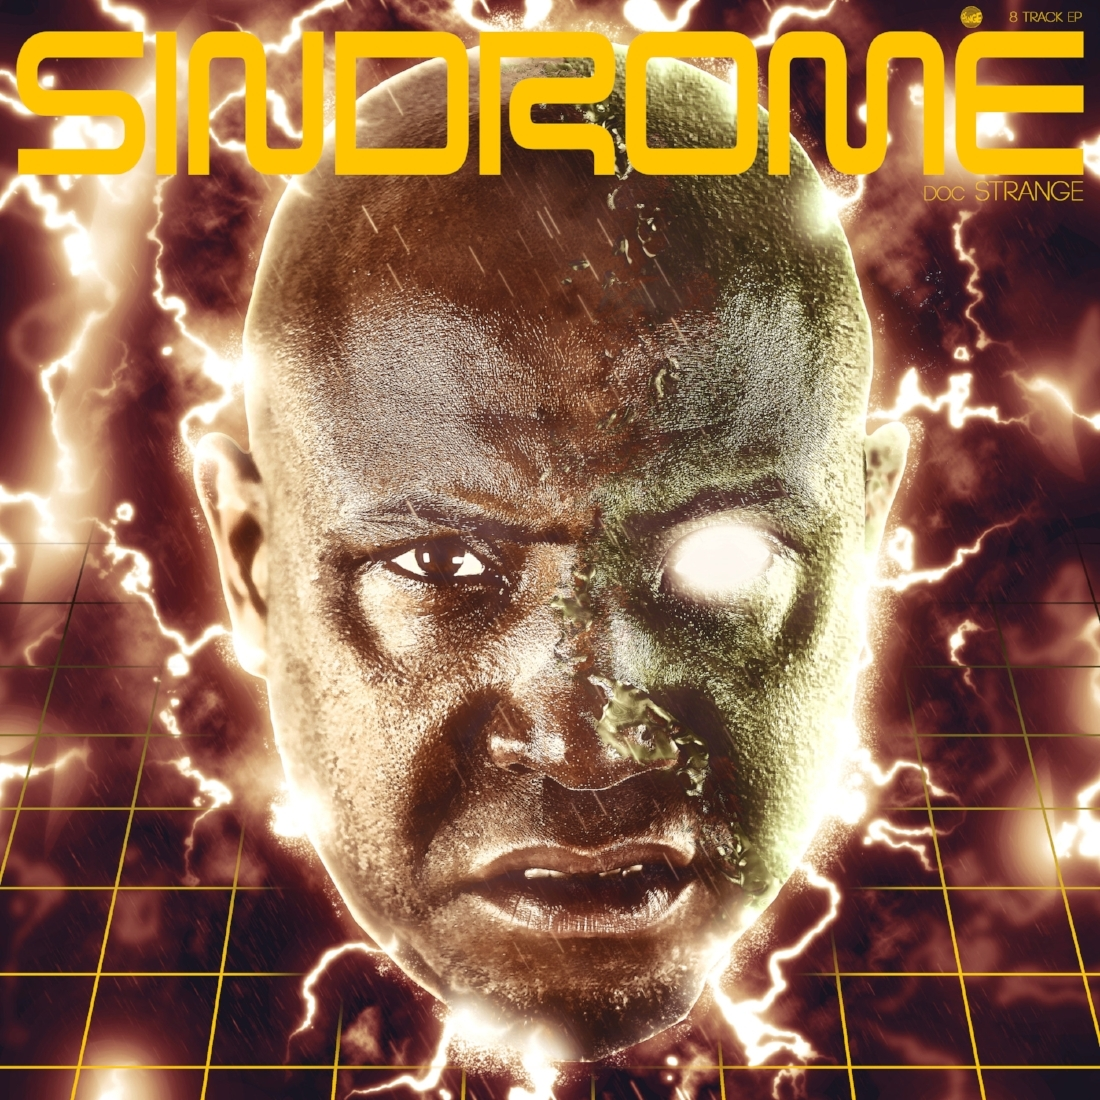 DS Sindrome Cover.jpg